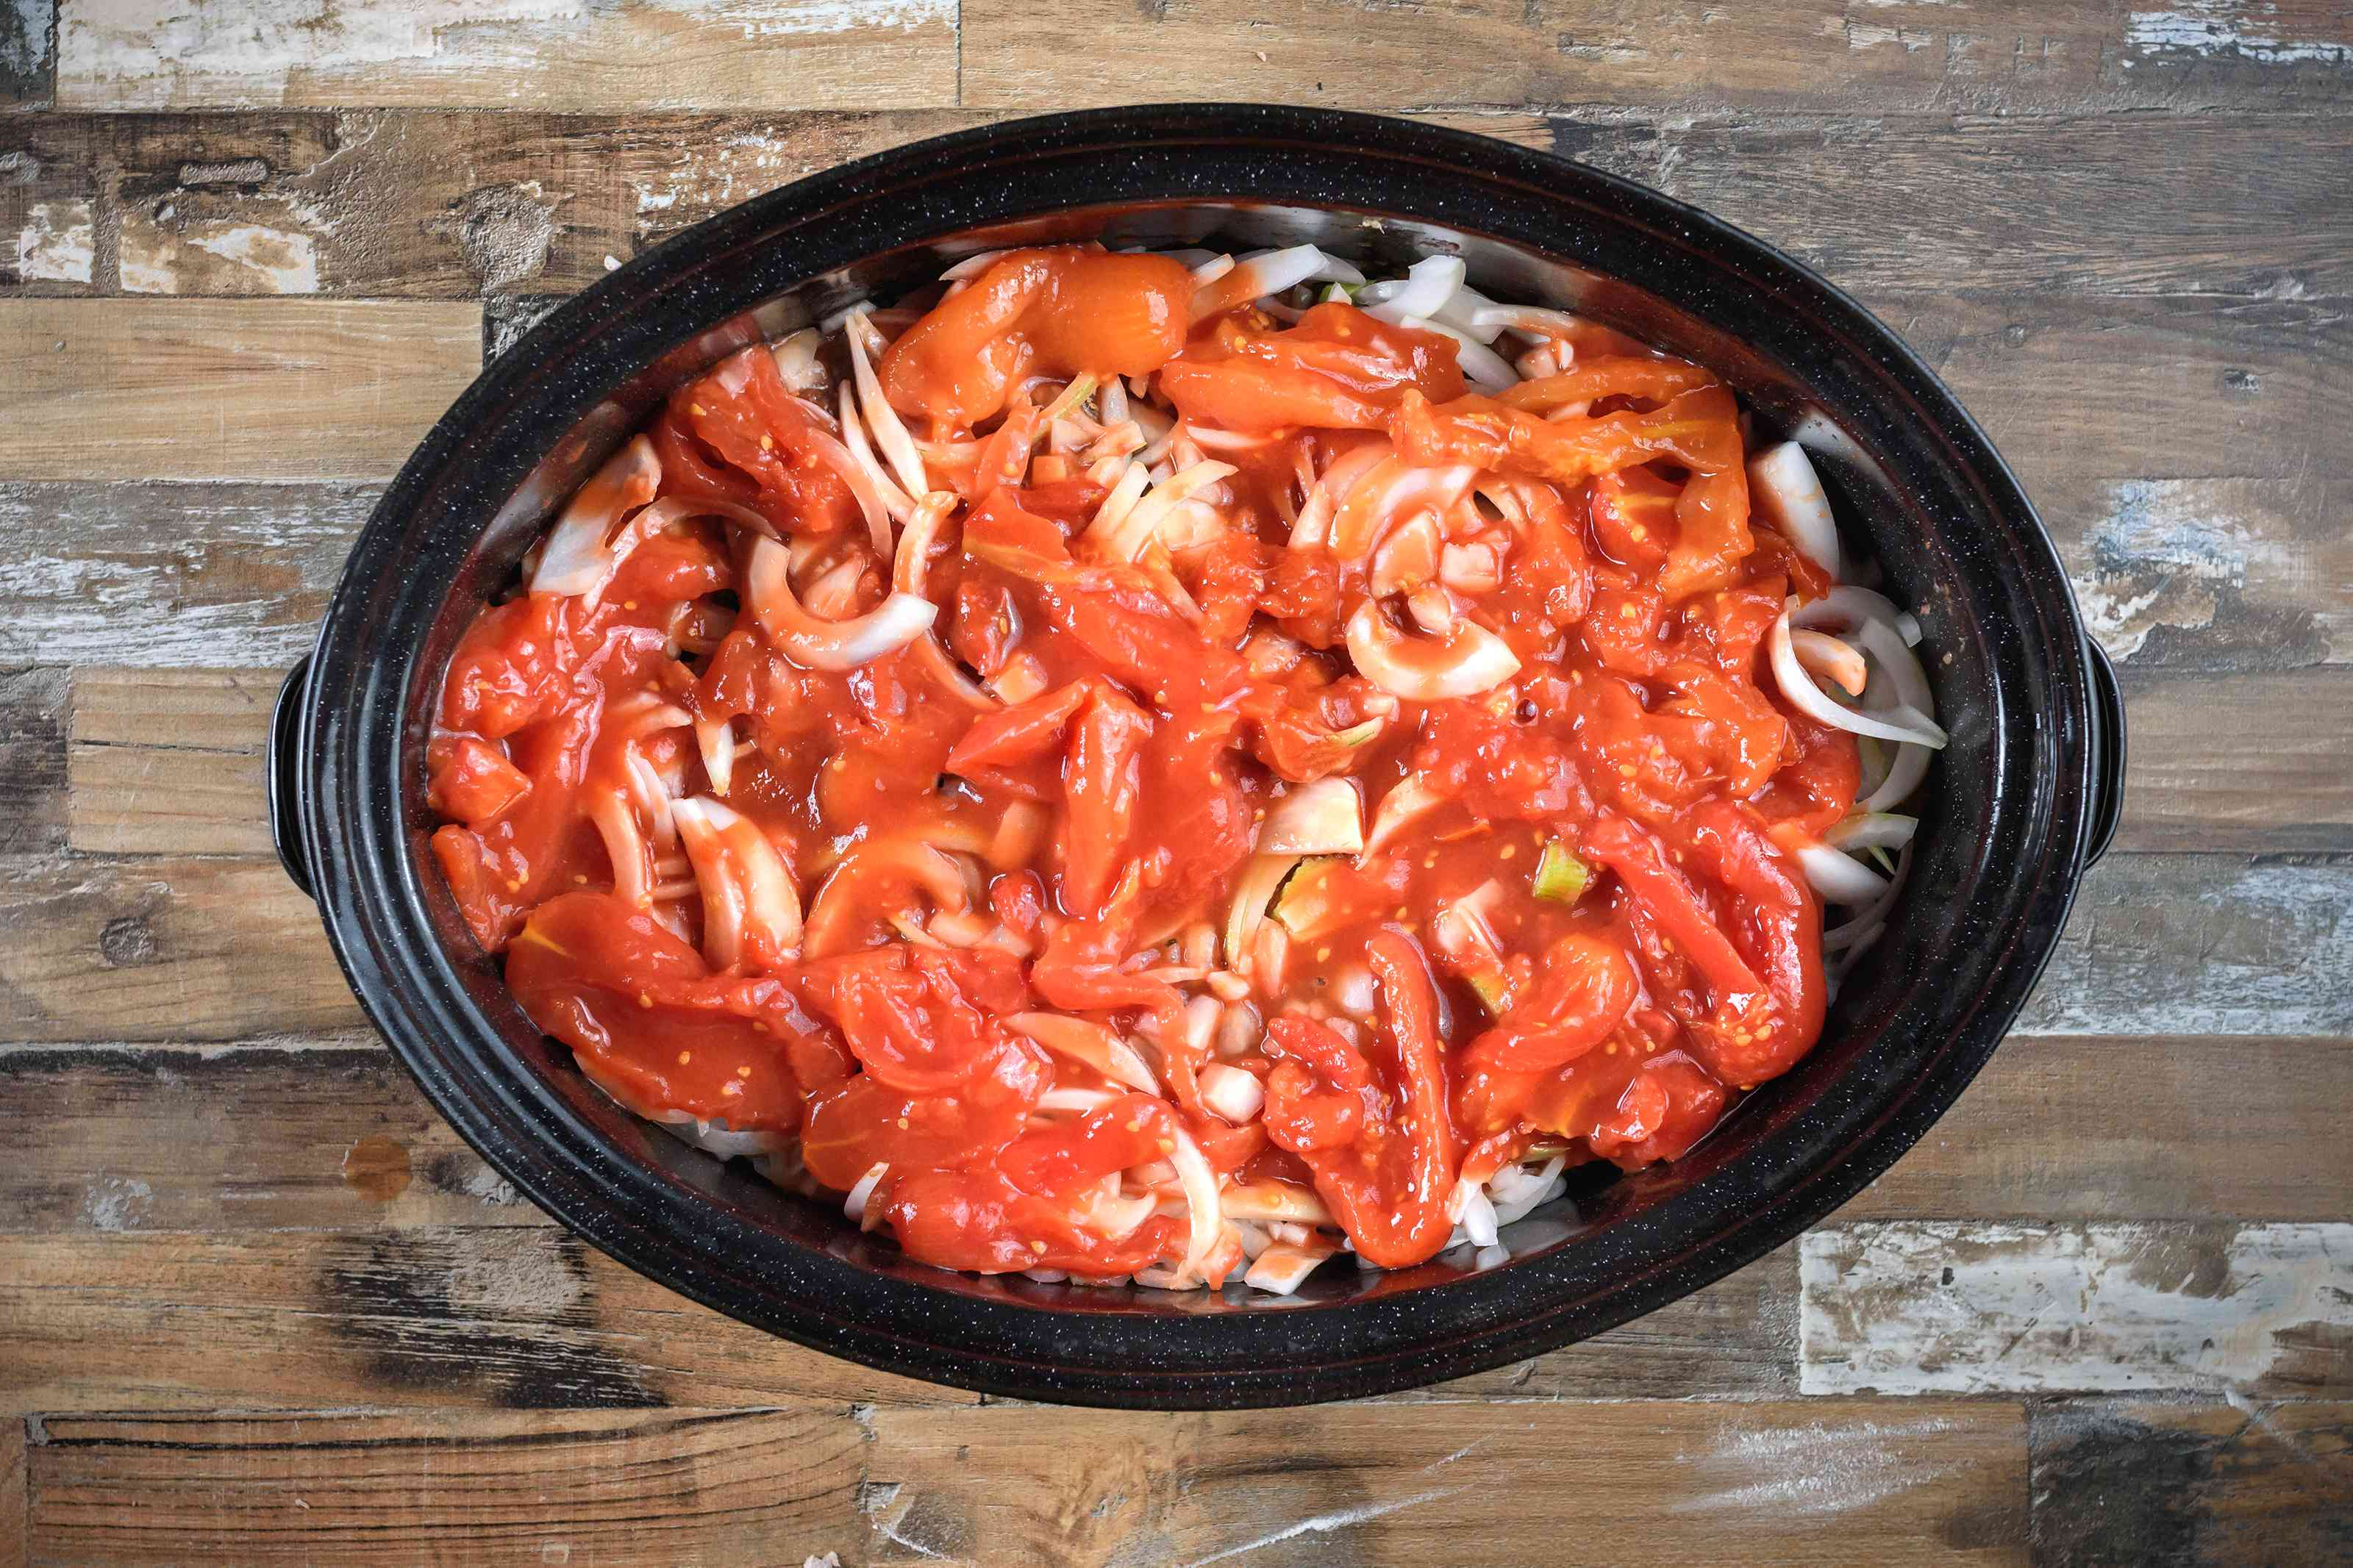 Steak, tomatoes, and onions in slow cooker